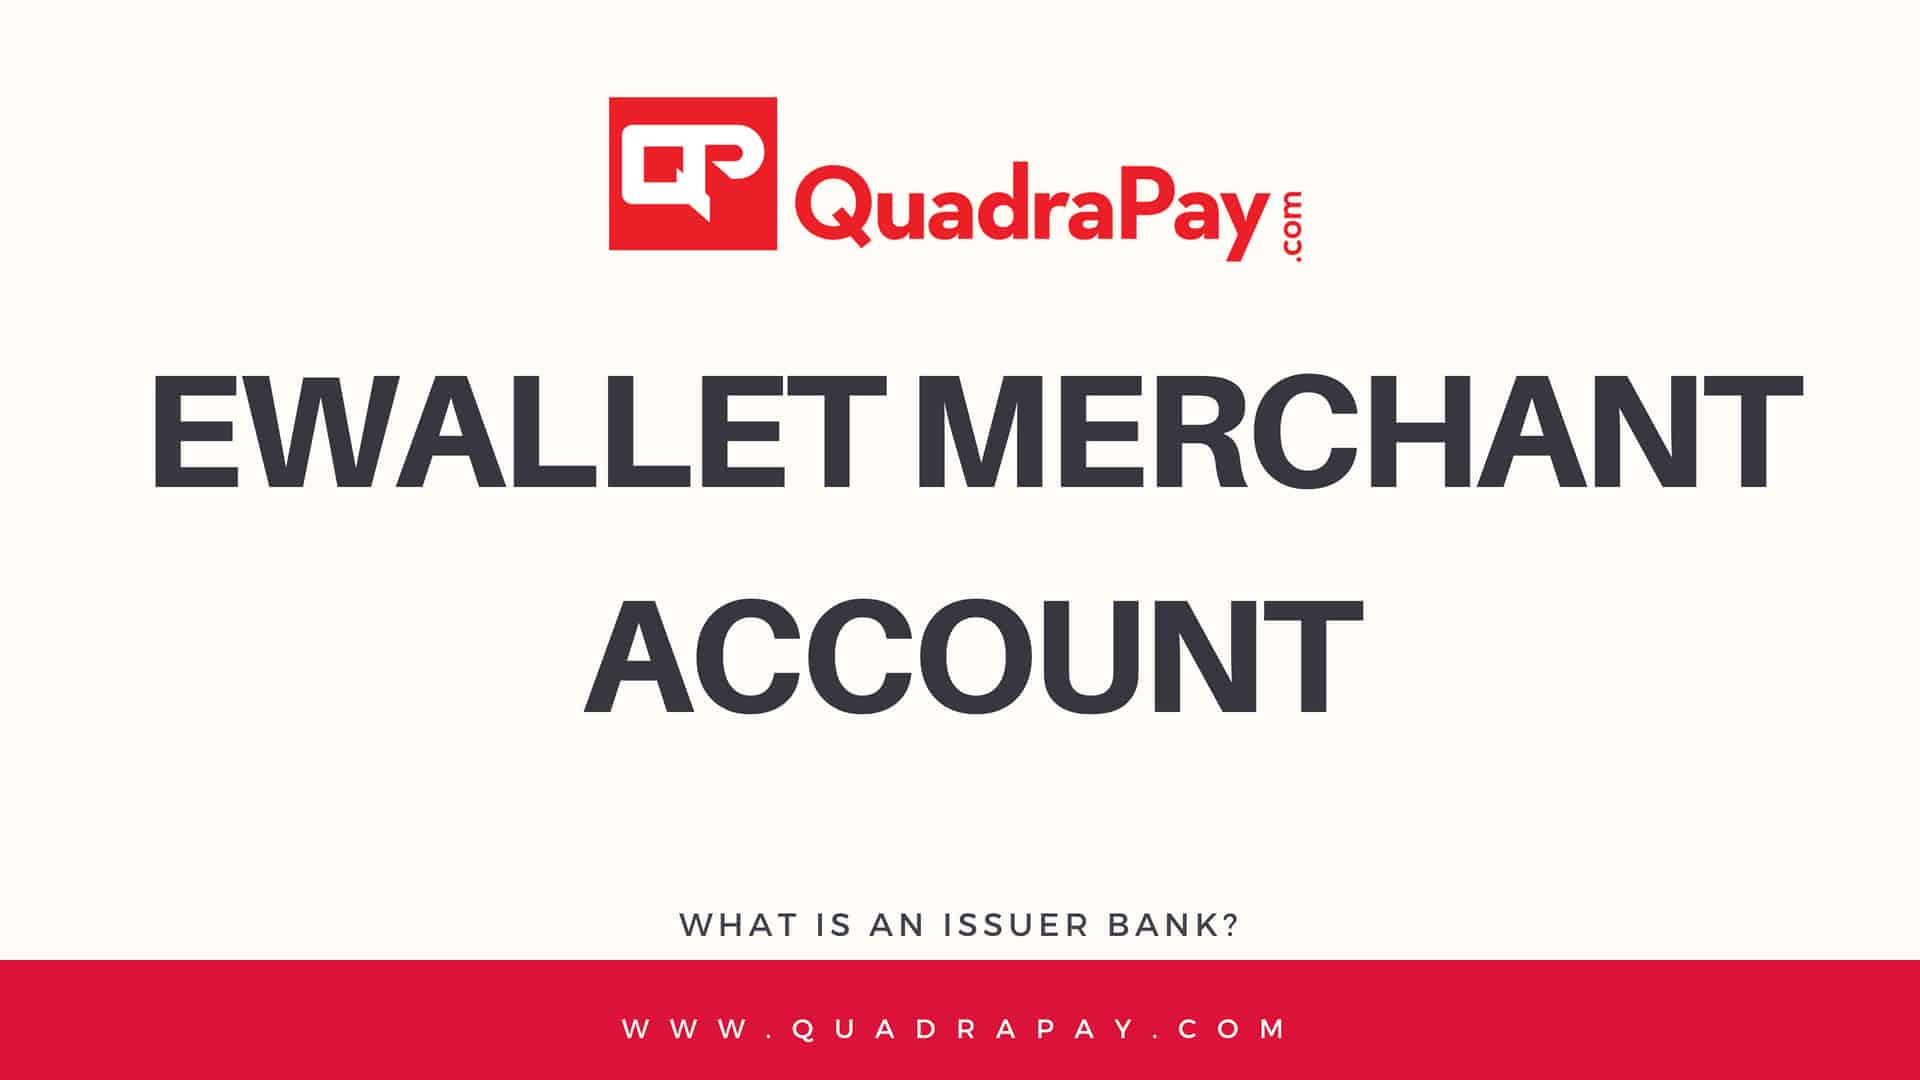 Ewallet Merchant Account